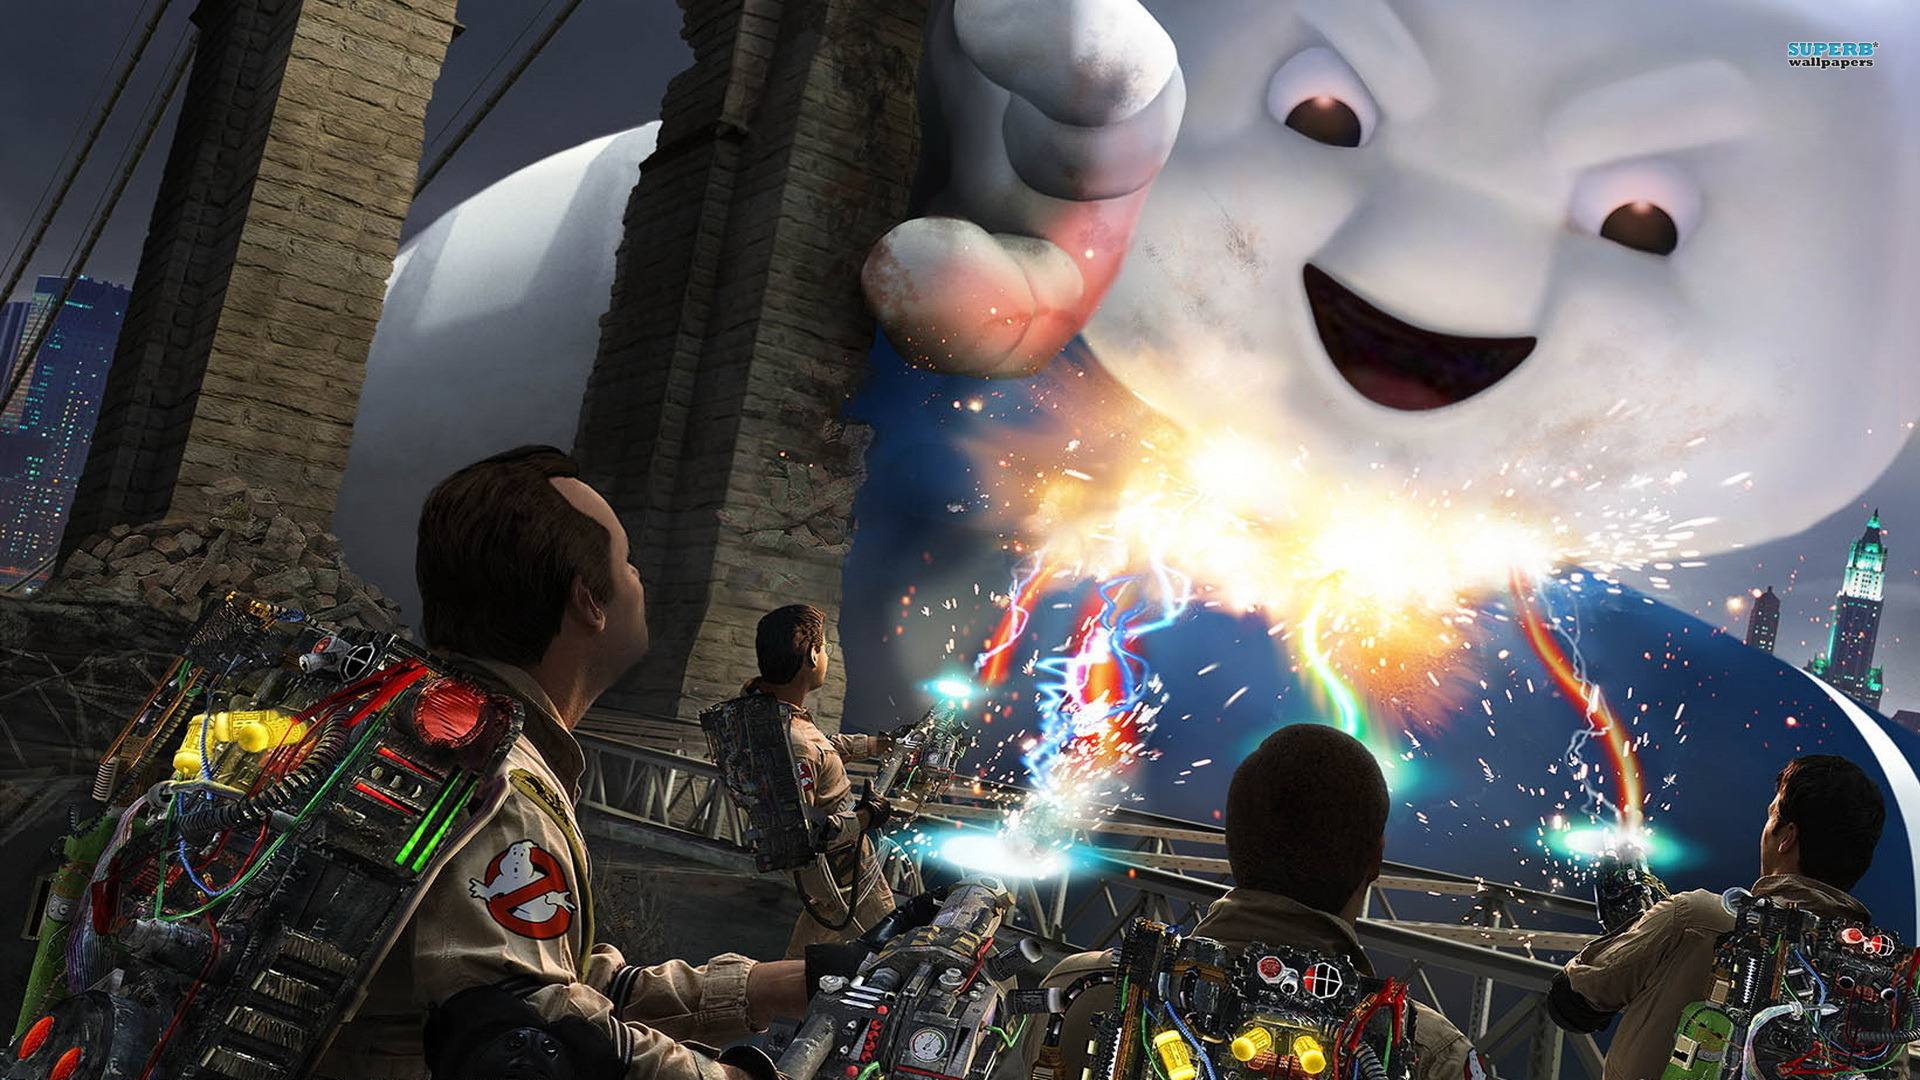 Cool Video Game Wallpapers Xghostbusters The Video Game Wallpaper X Px 1920x1080